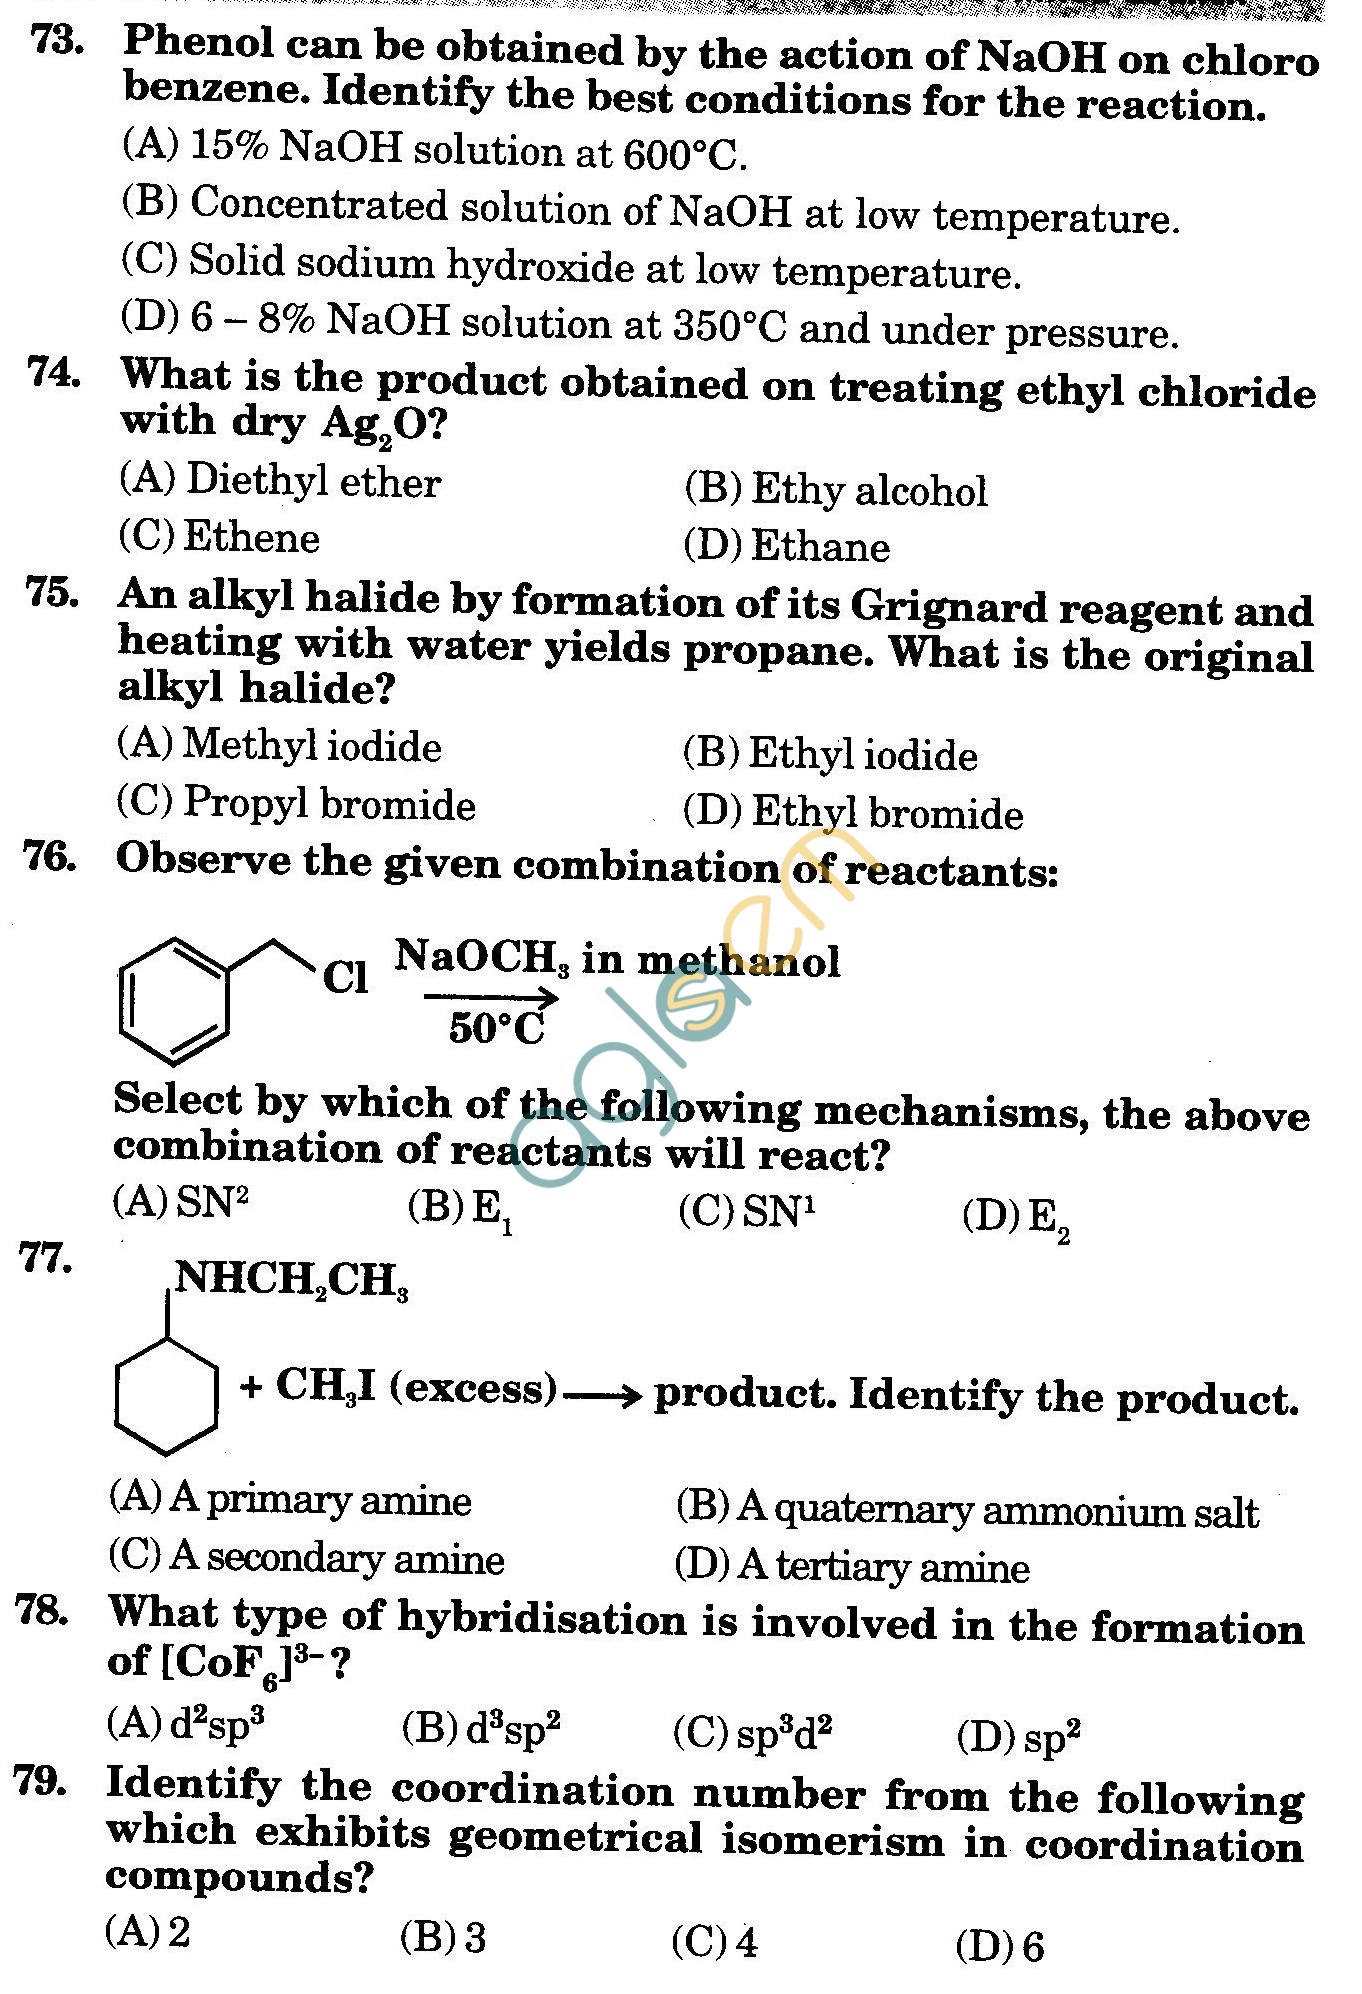 NSTSE 2010 Class XII PCM Question Paper with Answers - Chemistry